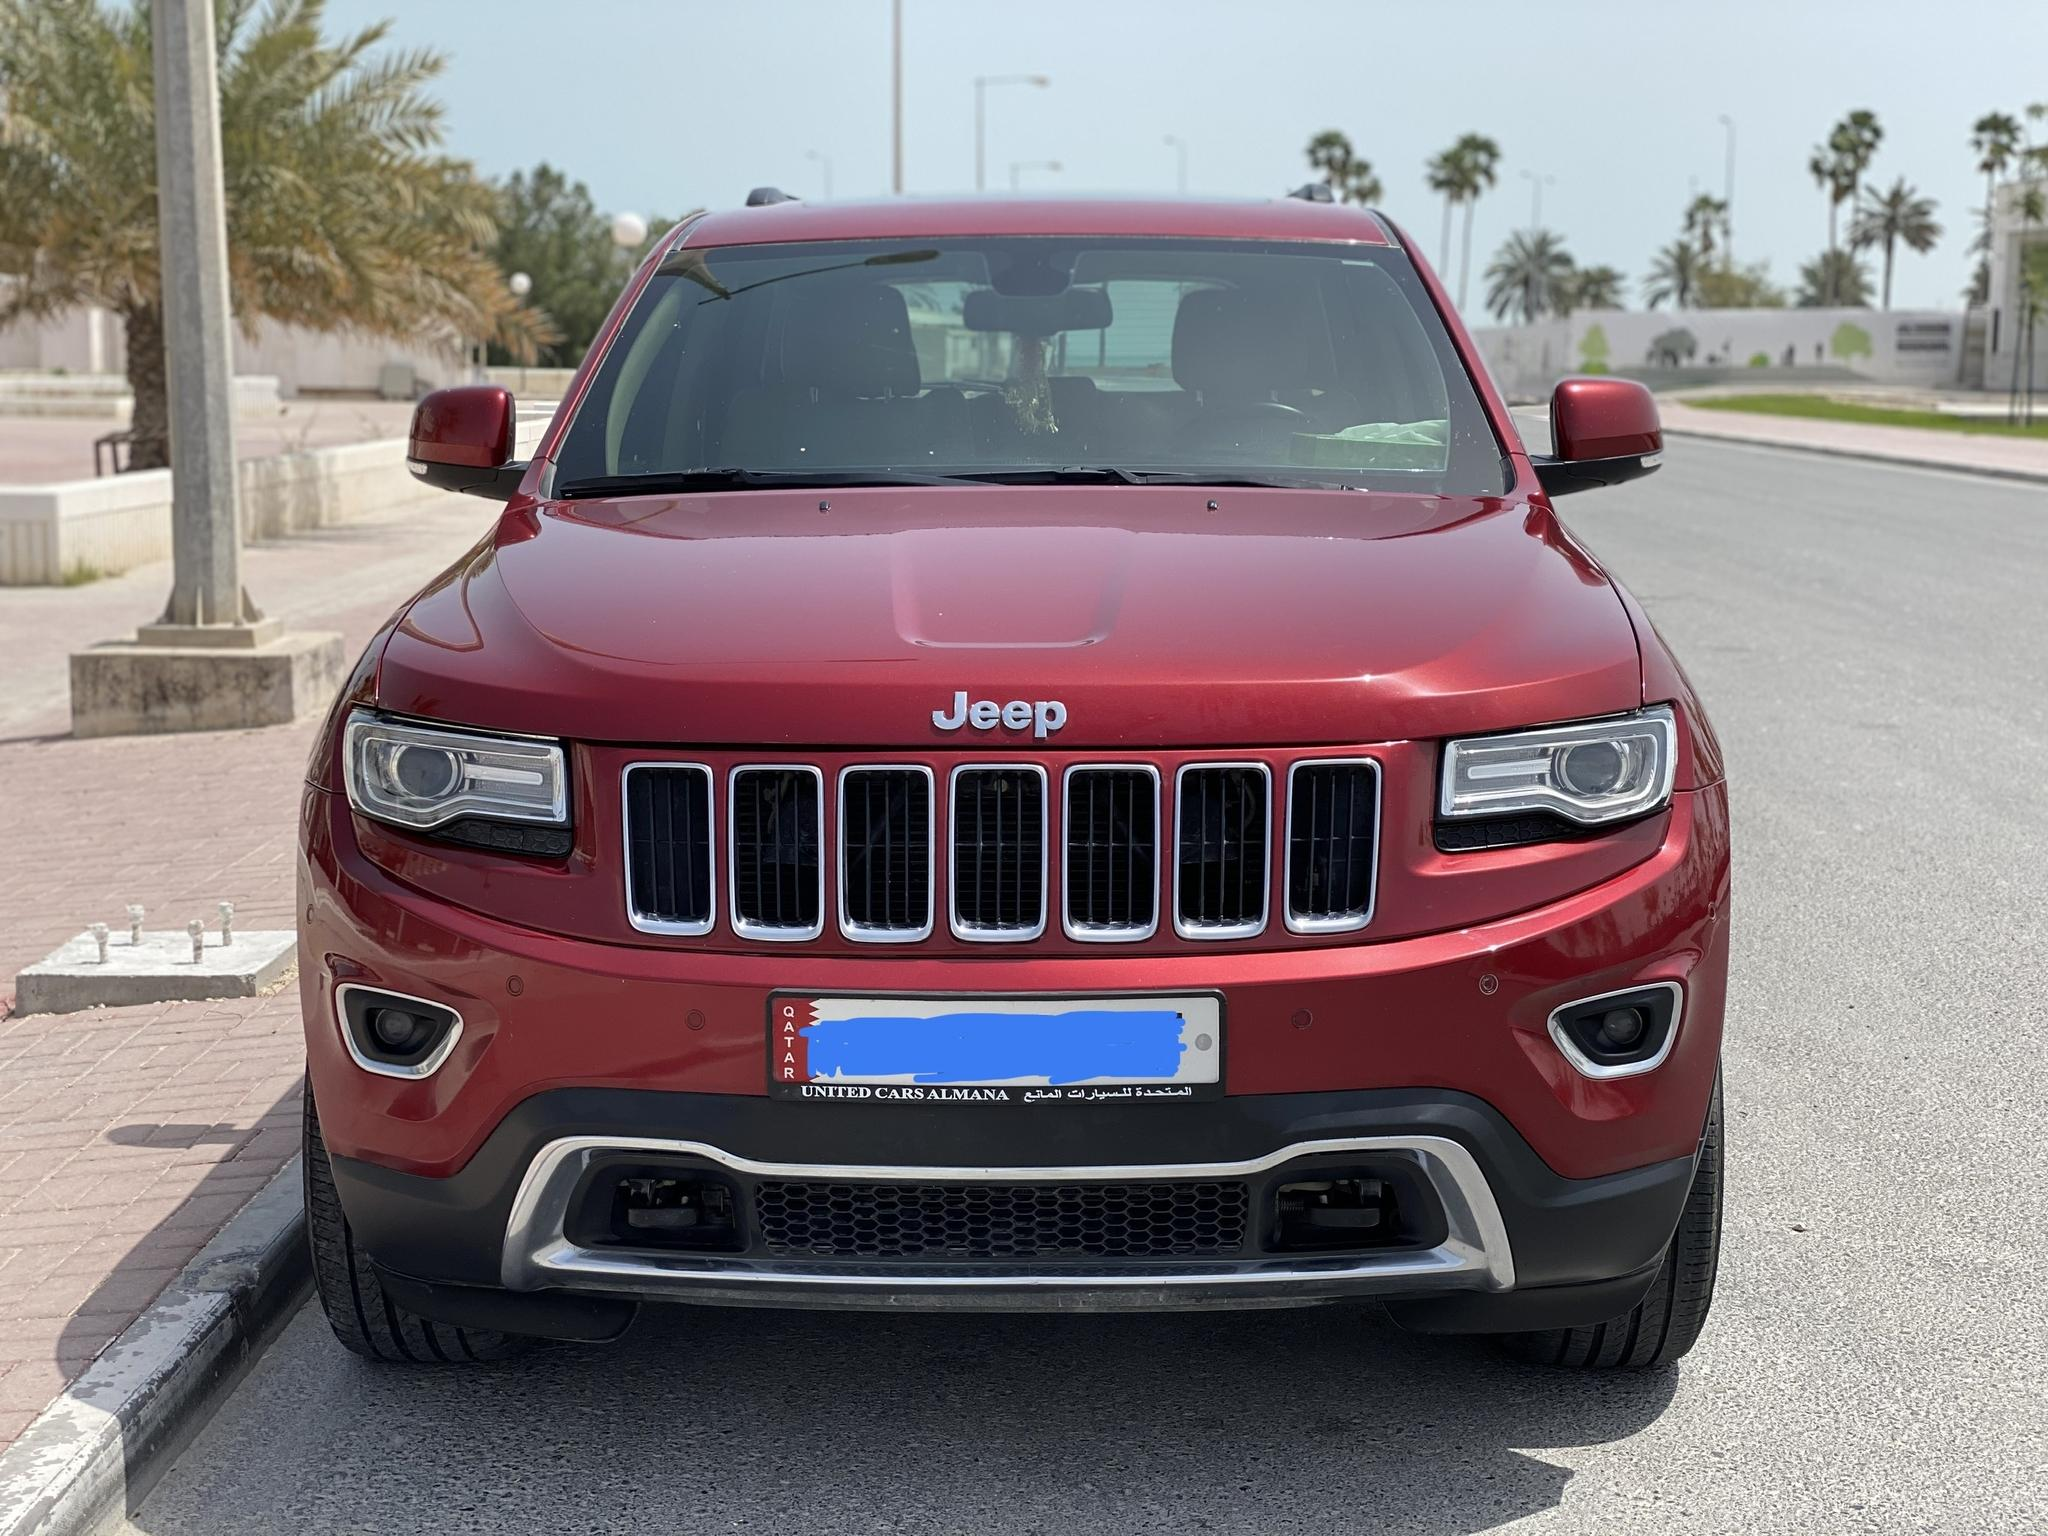 Jeep Grand Cherokee Limited 5.7 Litre in excellent